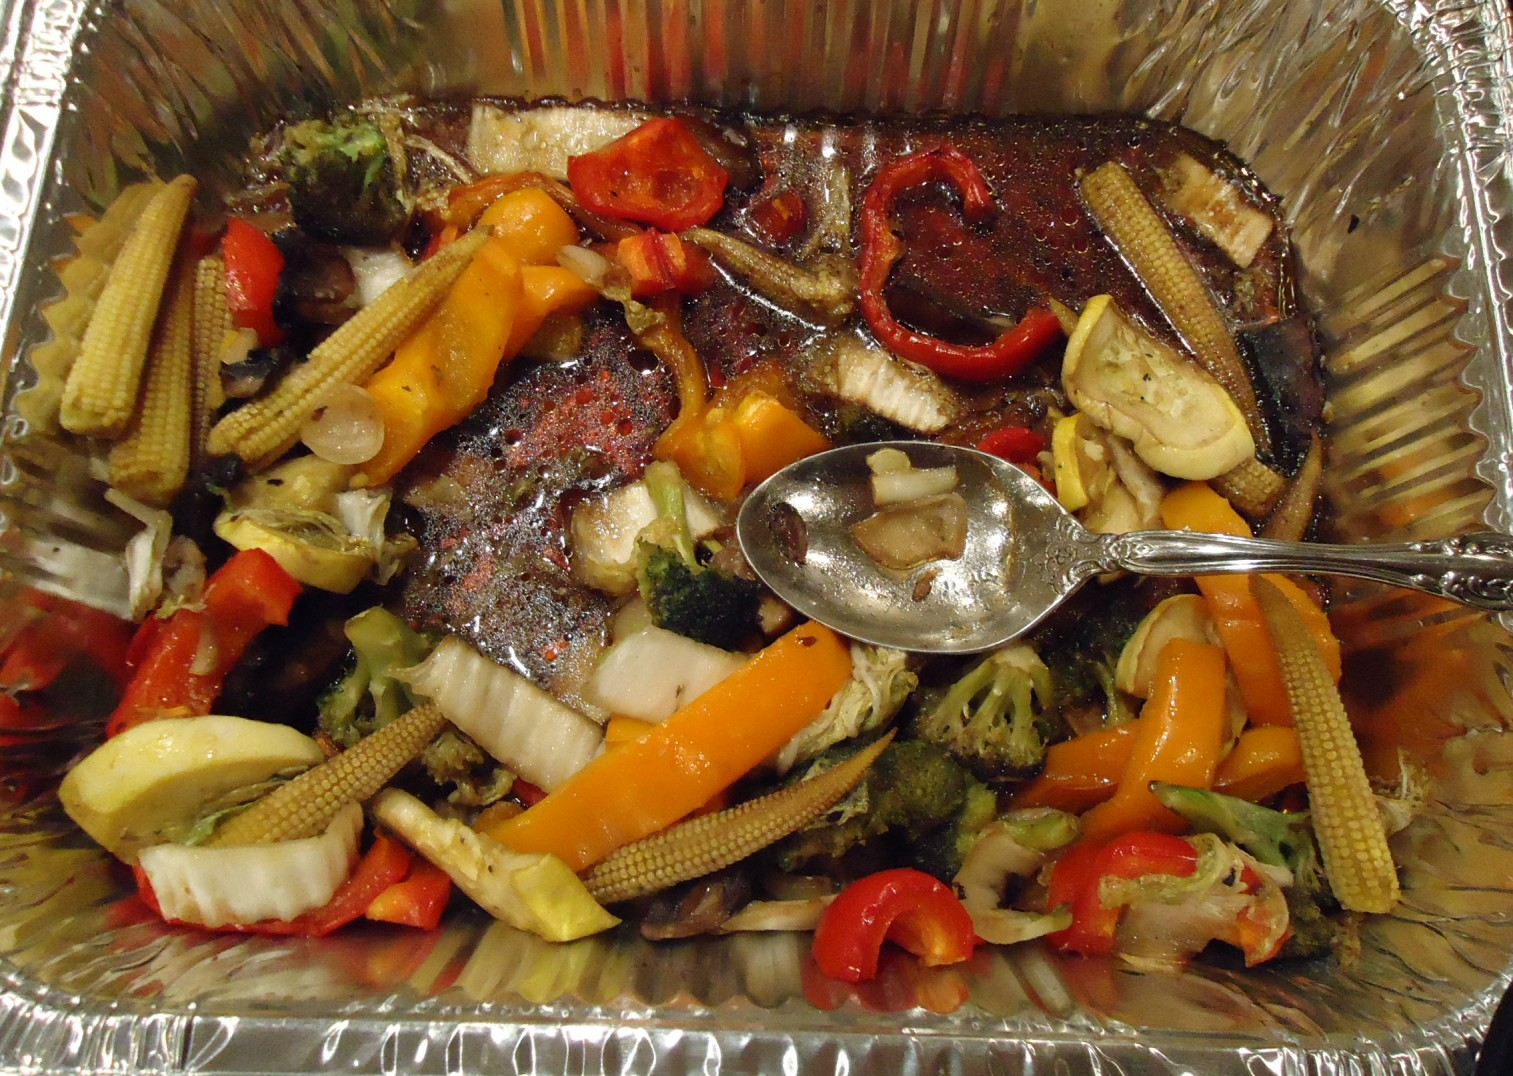 Vegetable Ideas For Dinner Party Part - 34: File:Dinner Vegetable Dish At A Party In A Silver Pan.jpg